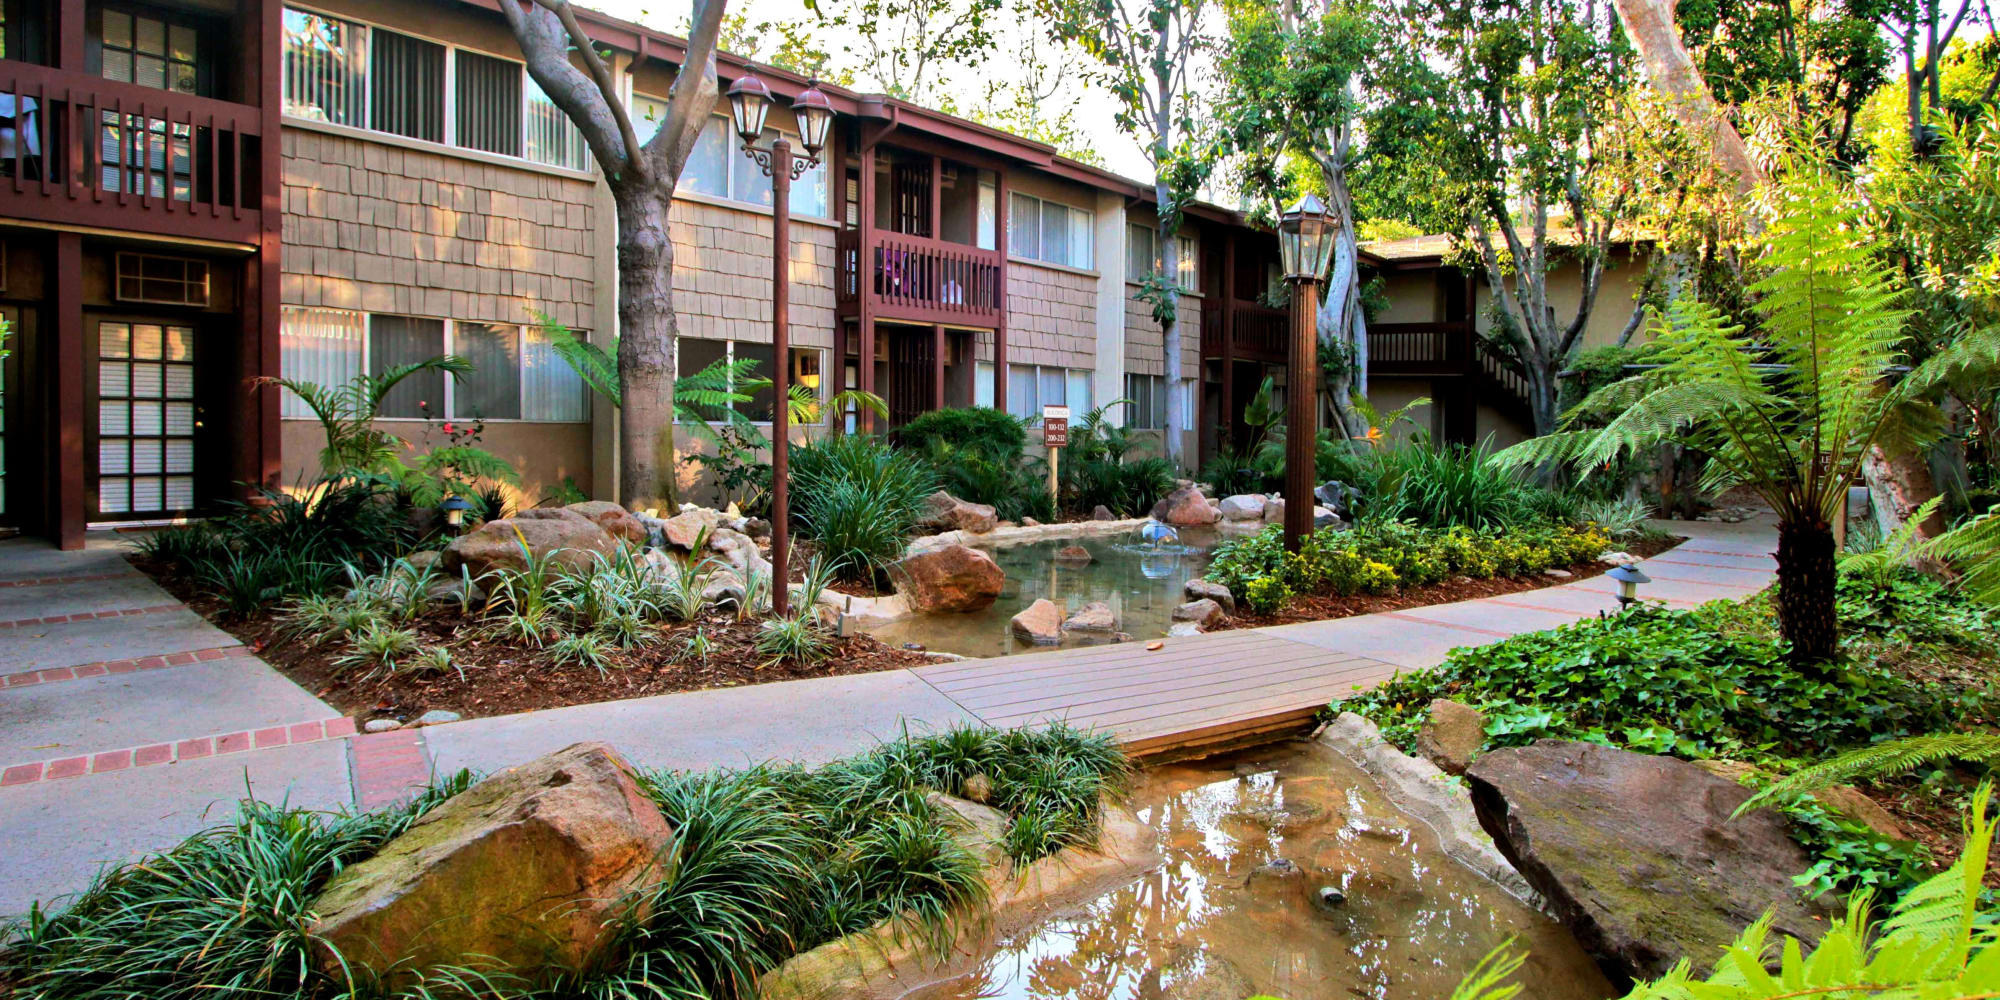 Water features and lush landscaping outside resident buildings at Rancho Los Feliz in Los Angeles, California